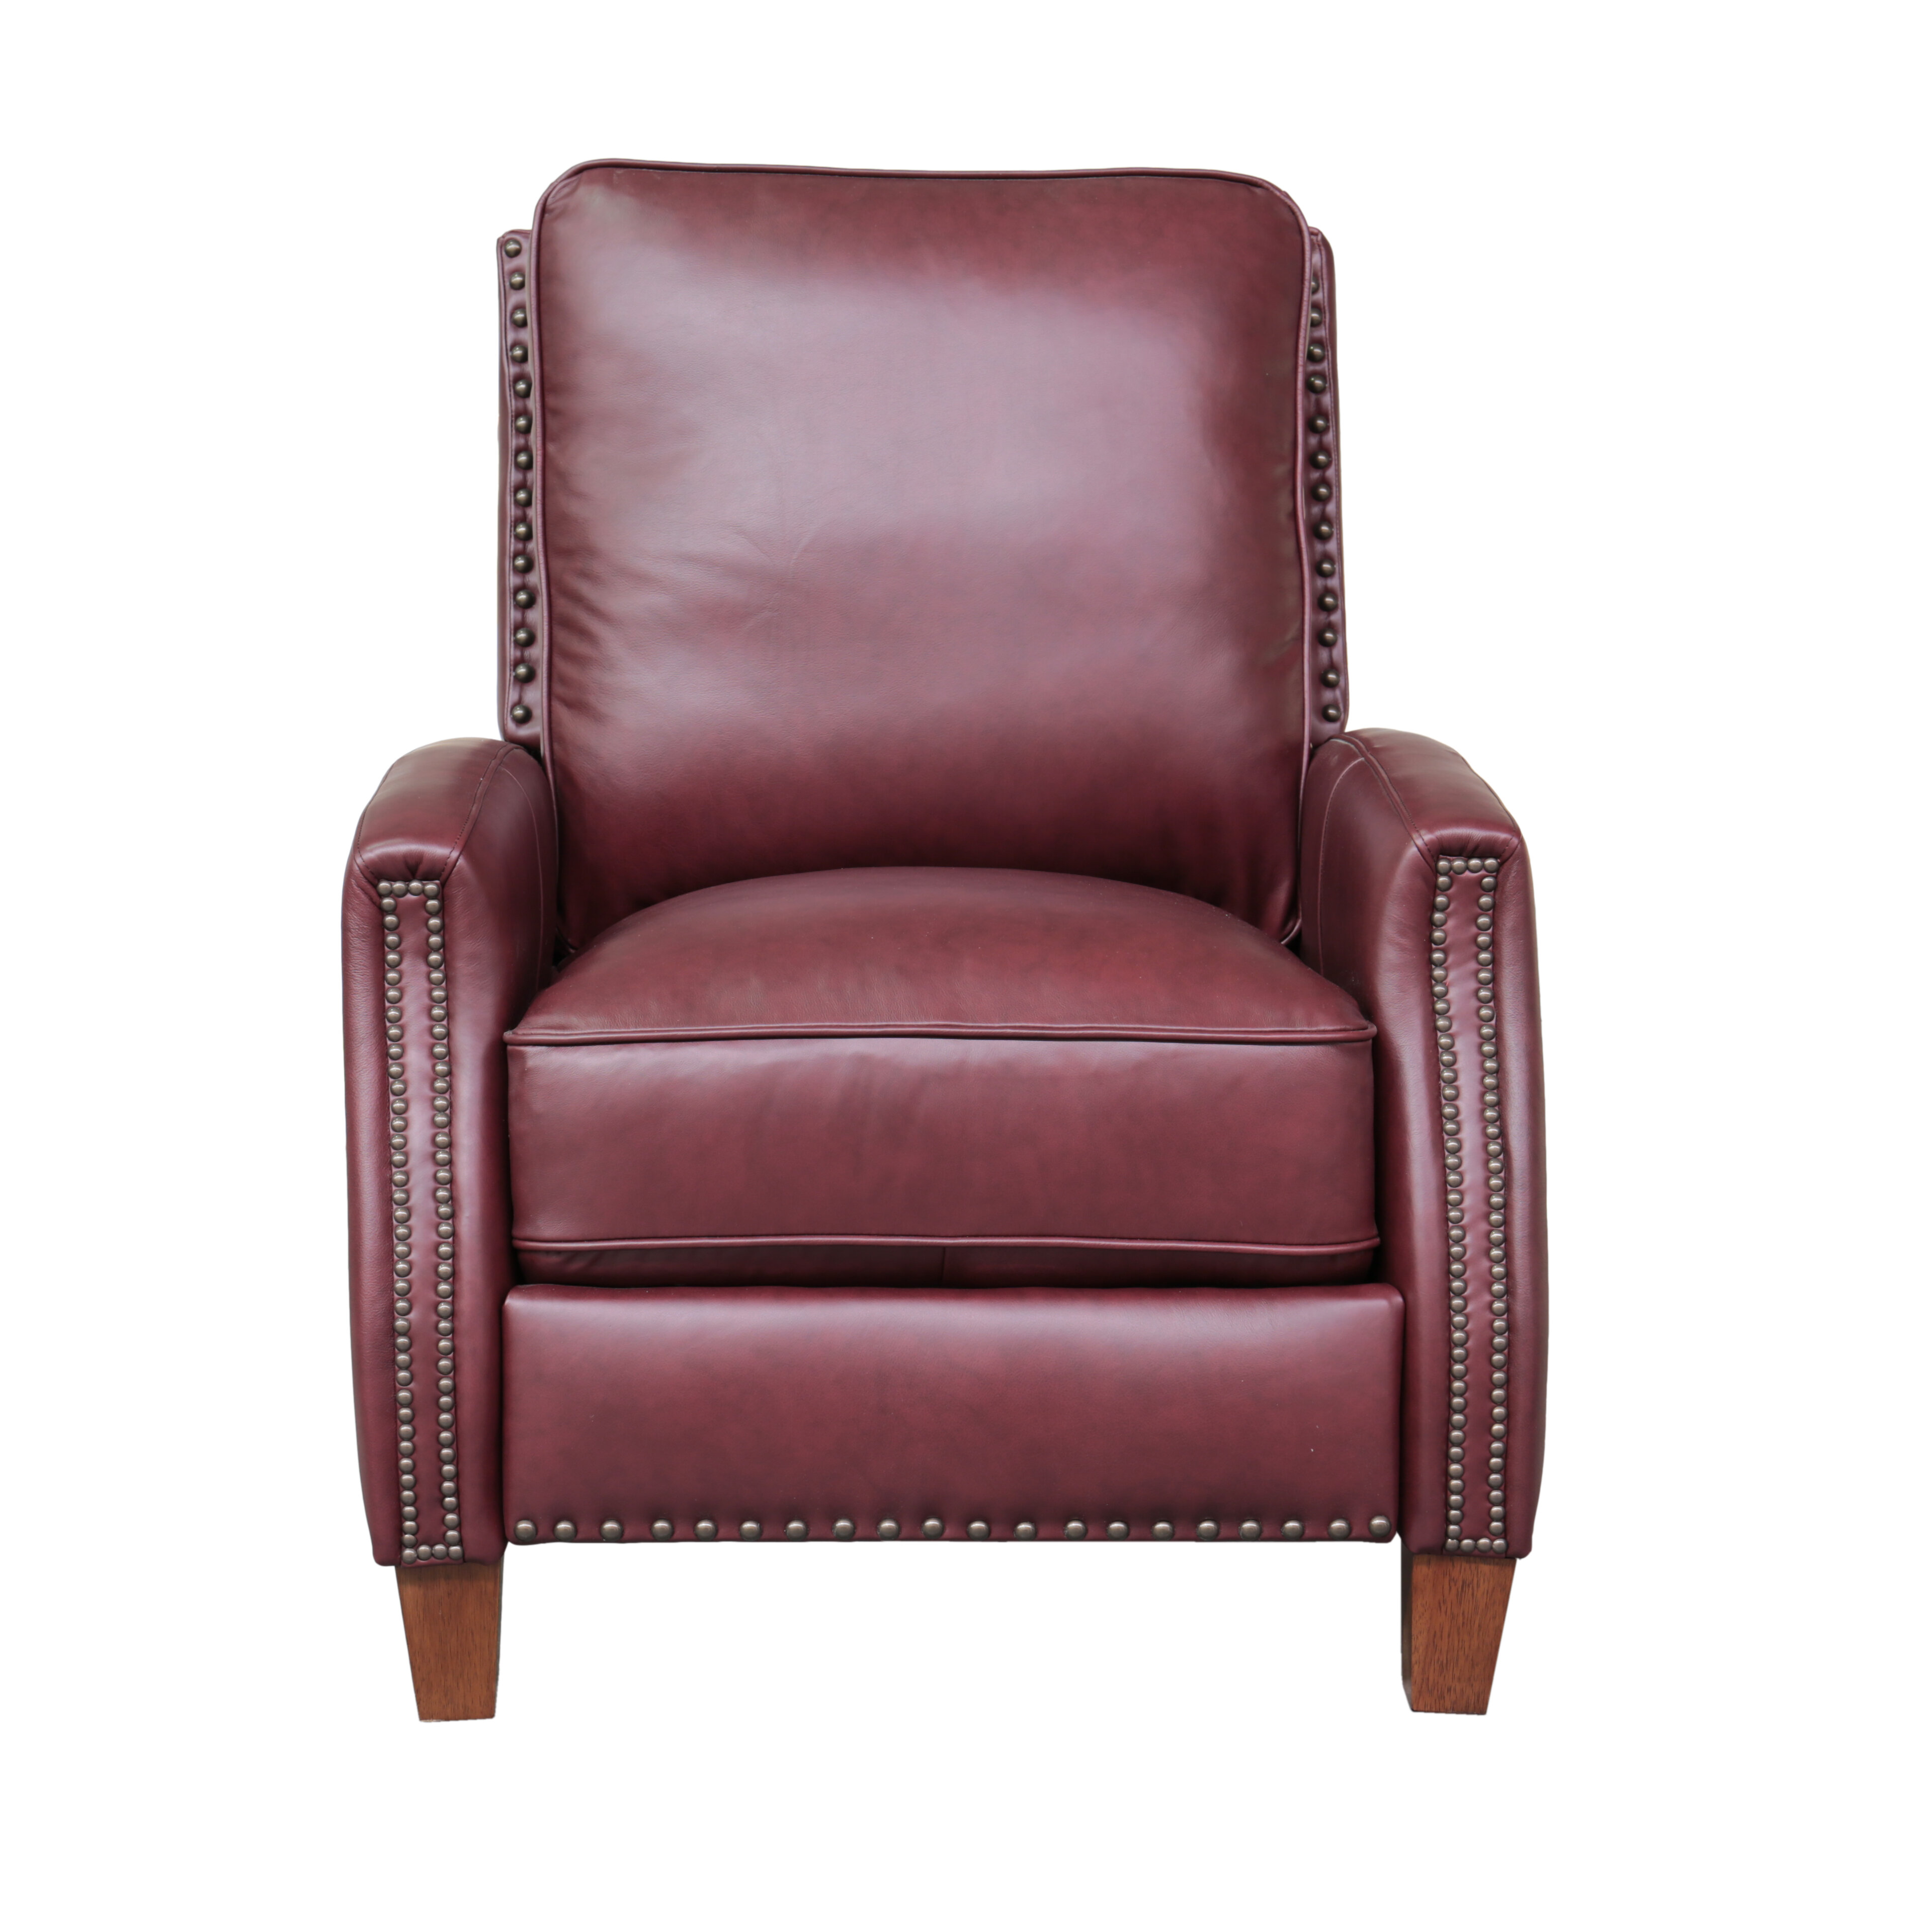 recliners leather best go top chairs modern sale com rooms to on chair home club heavy lucas recliner cheap